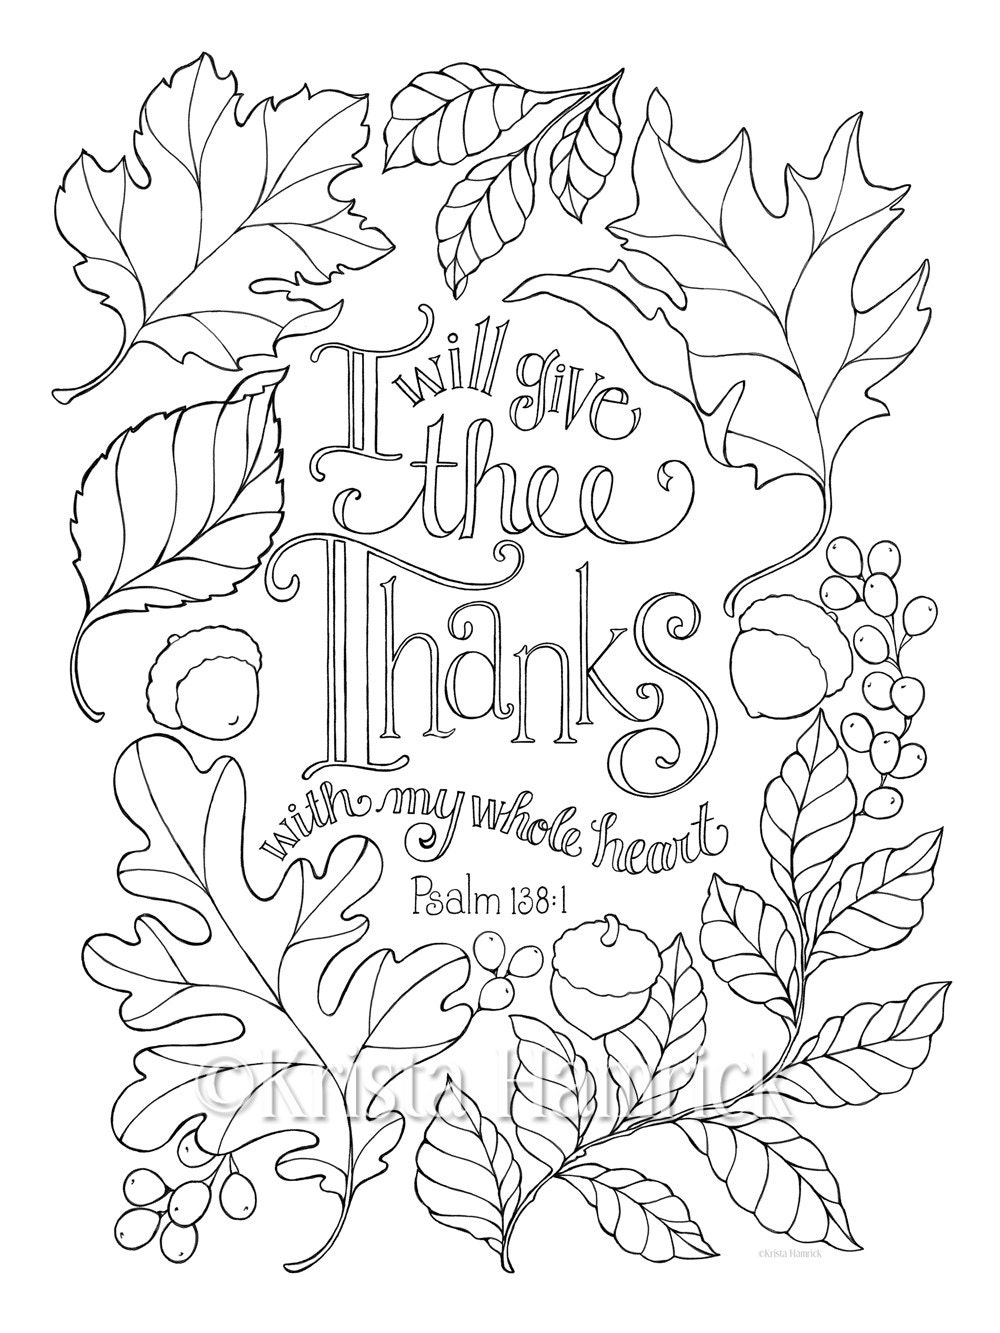 My Whole Heart Coloring Page In Two Sizes 8 5x11 And Bible